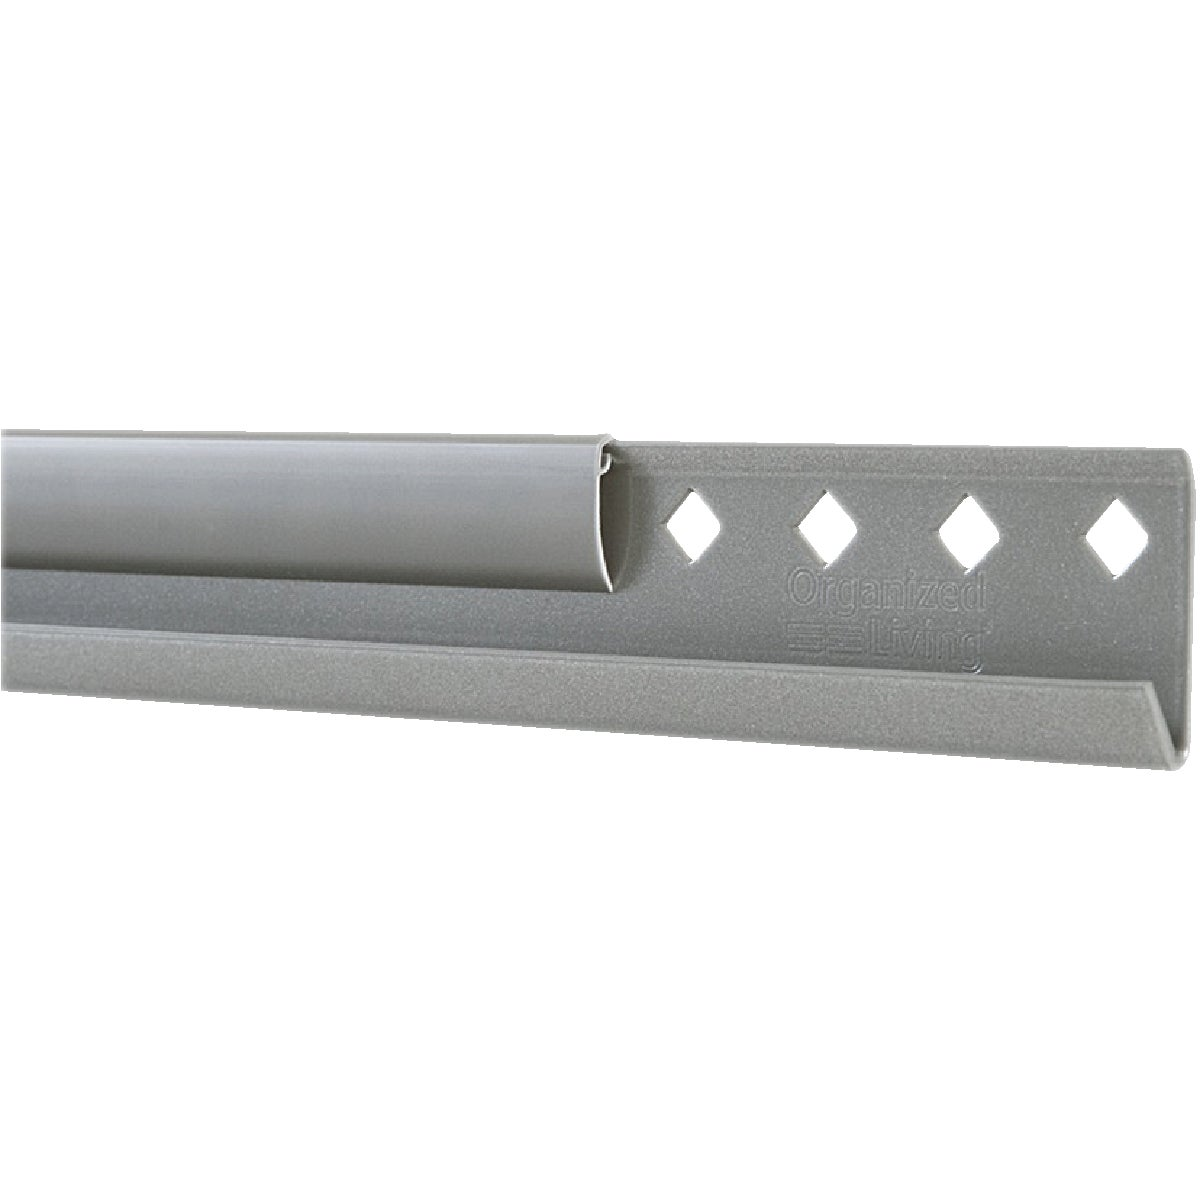 "64"" NICKEL HANGING RAIL"